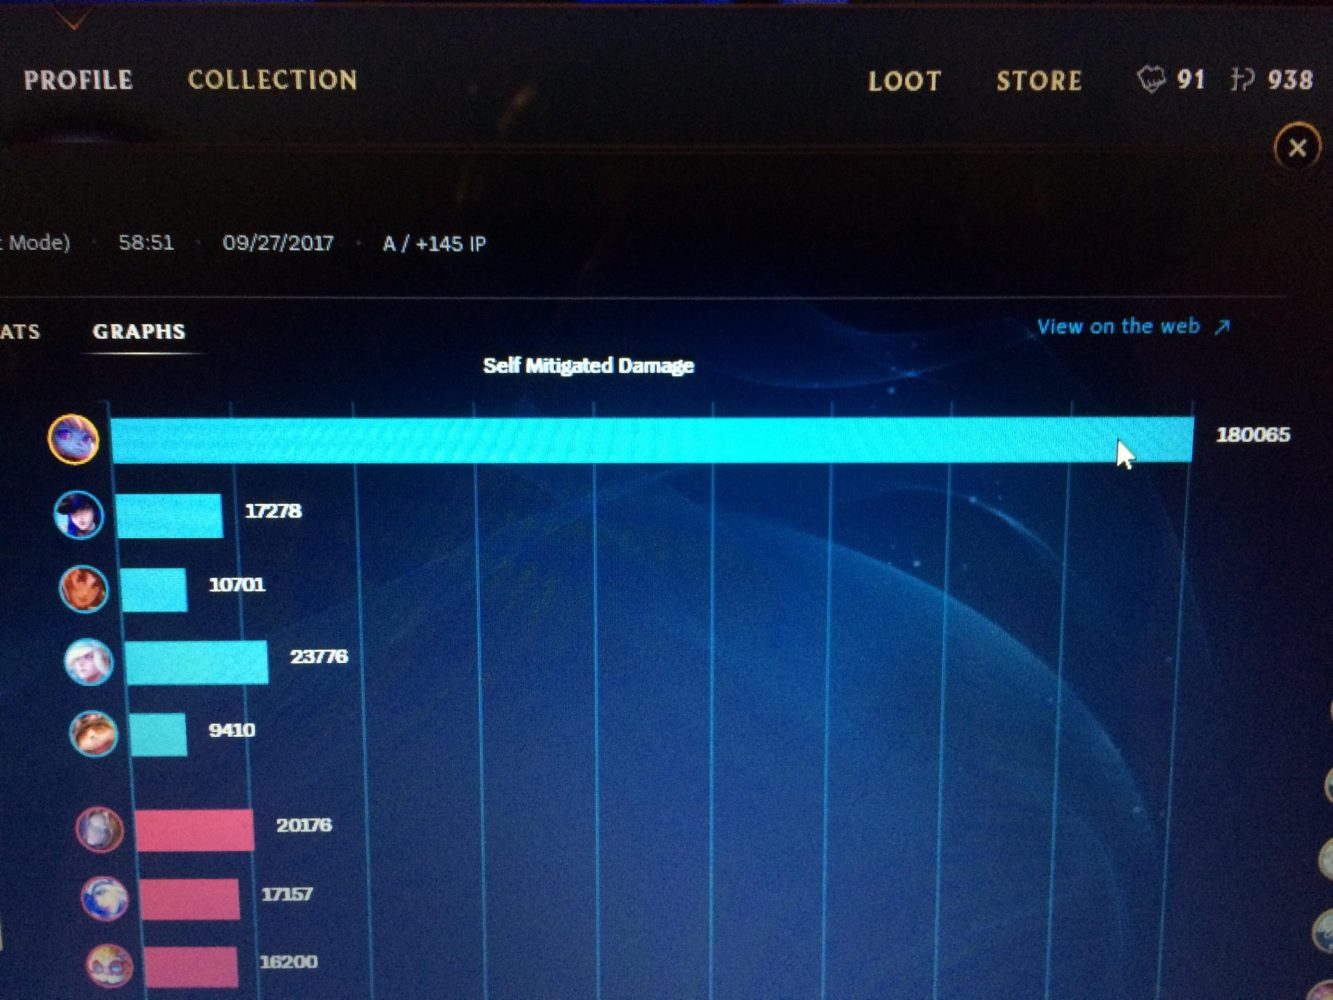 What is Self Mitigated Damage in League of Legends?